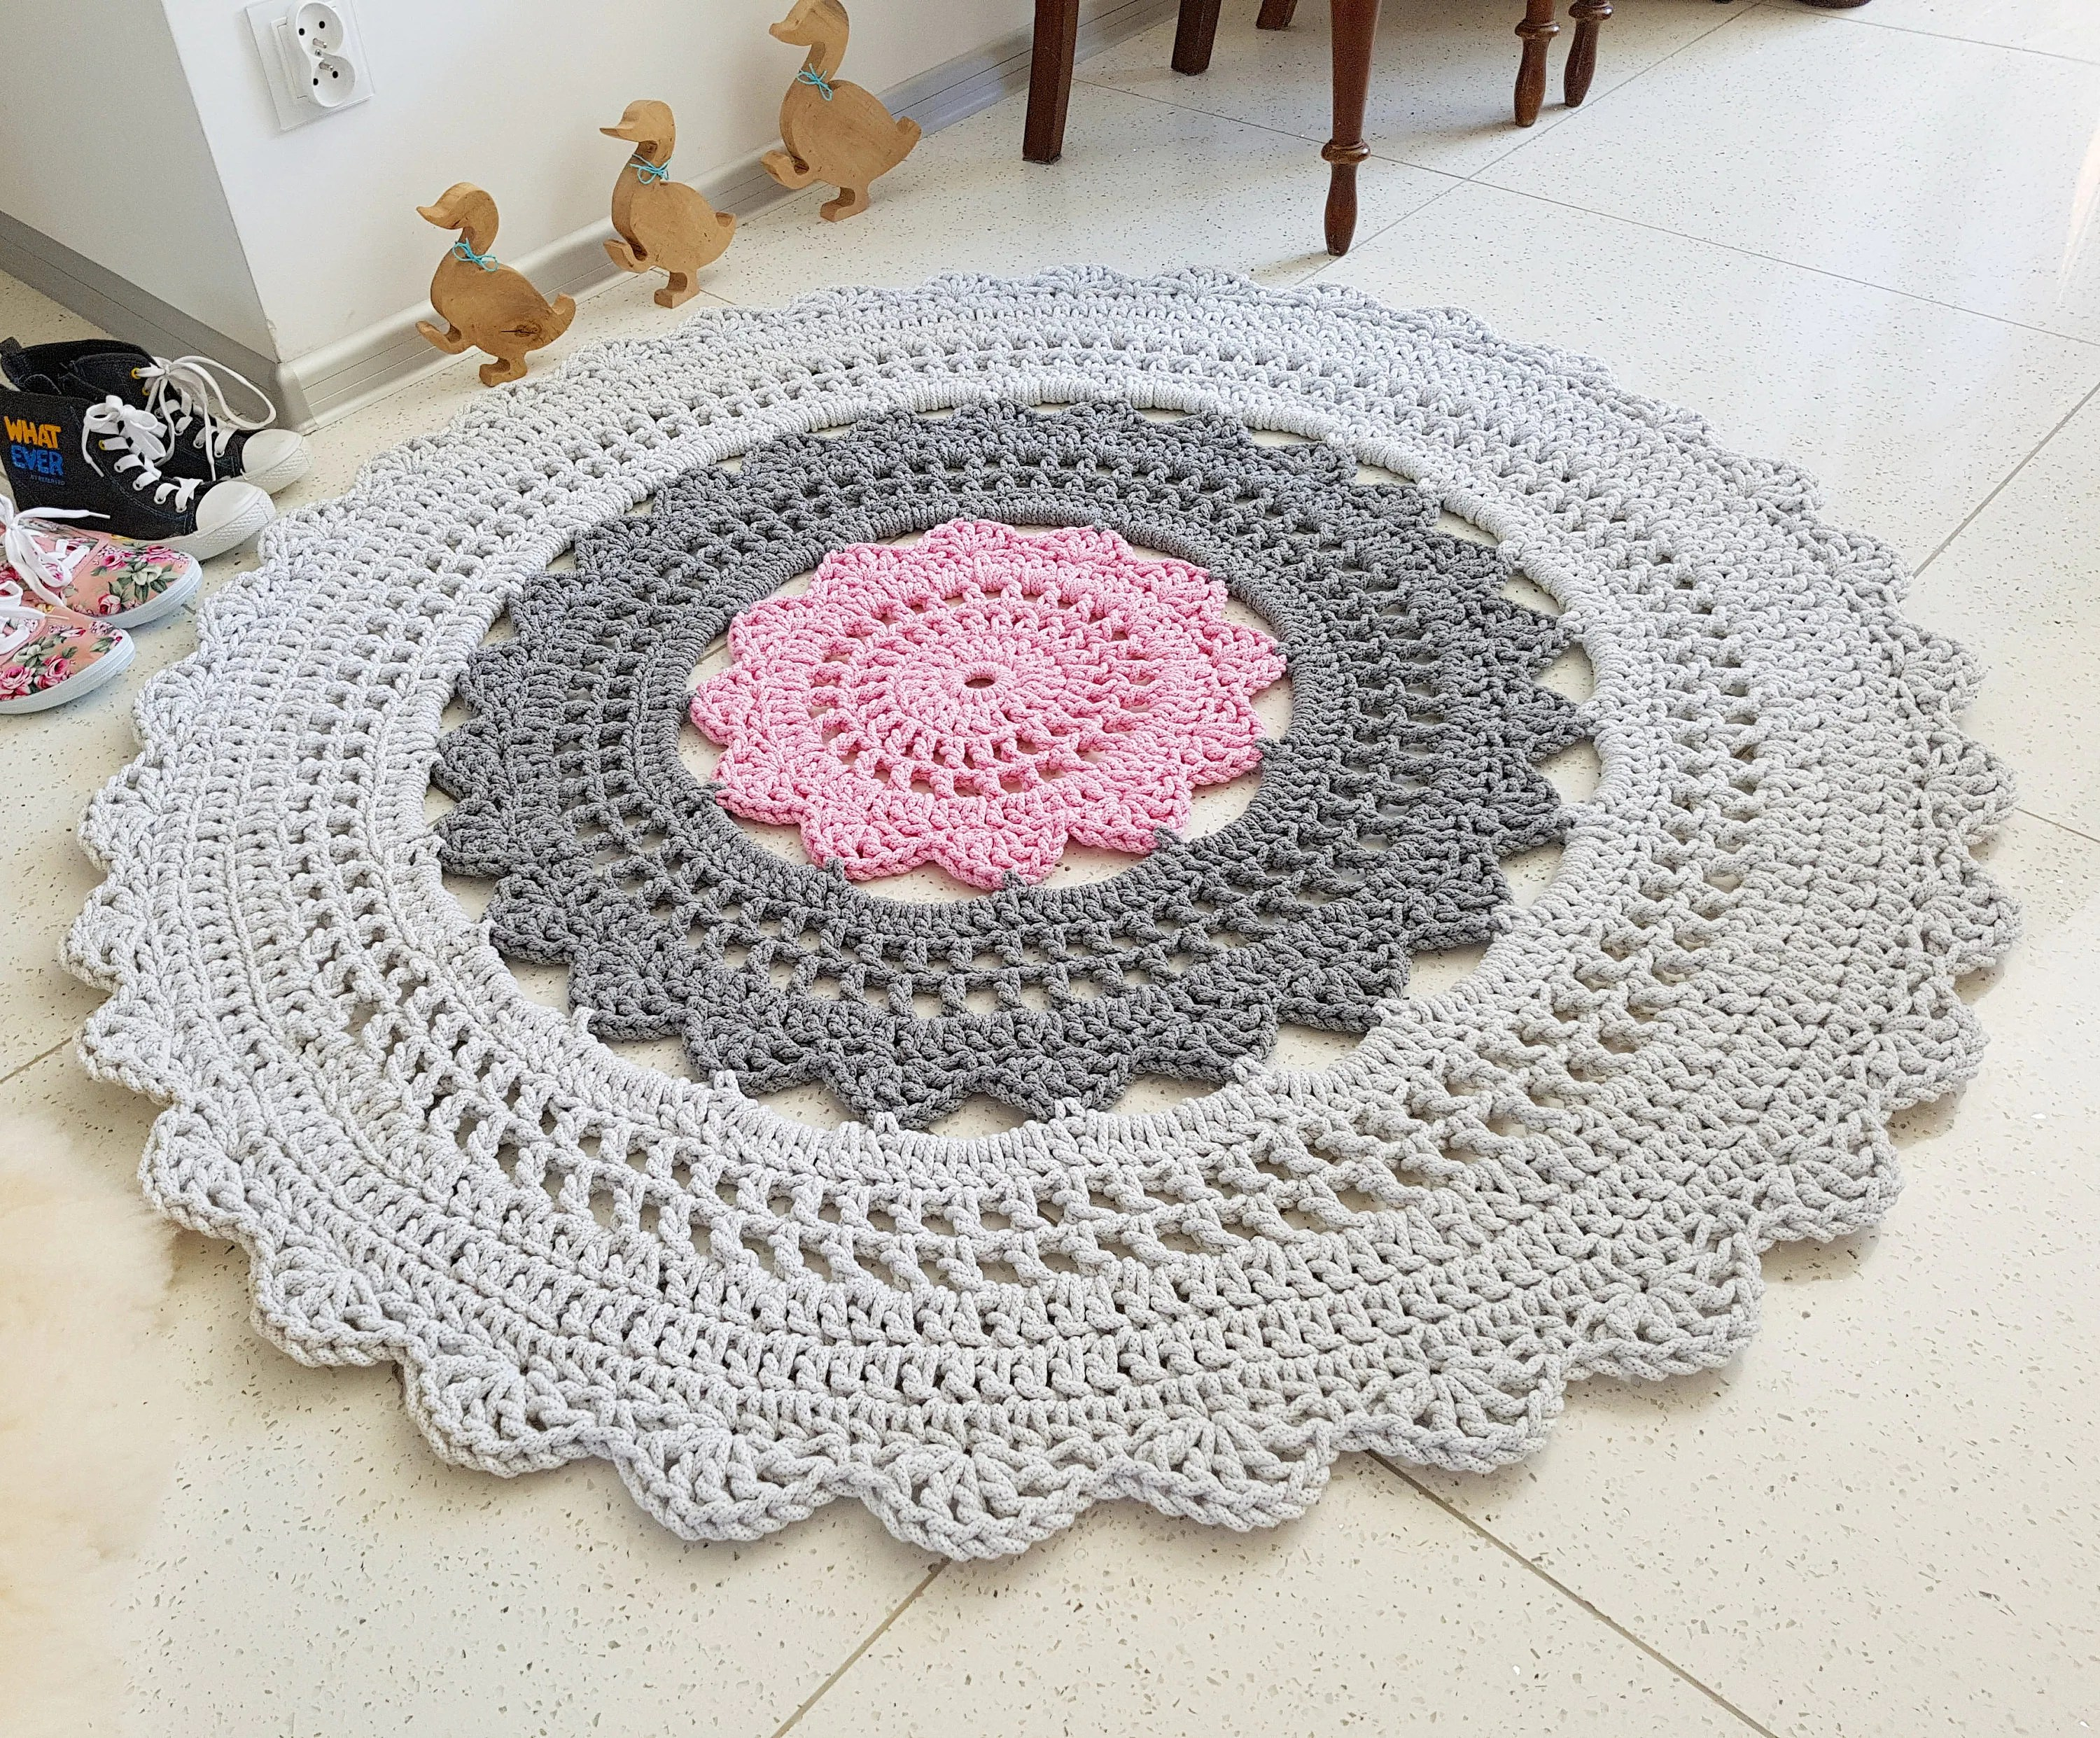 Tapis Shabby Chic Multi Colour Doily Rug Tapis Bohemian Shabby Chic Country Bedroom Rustic Floor Decor Teppich Rund Alfombra Trapillo Modern Carpet